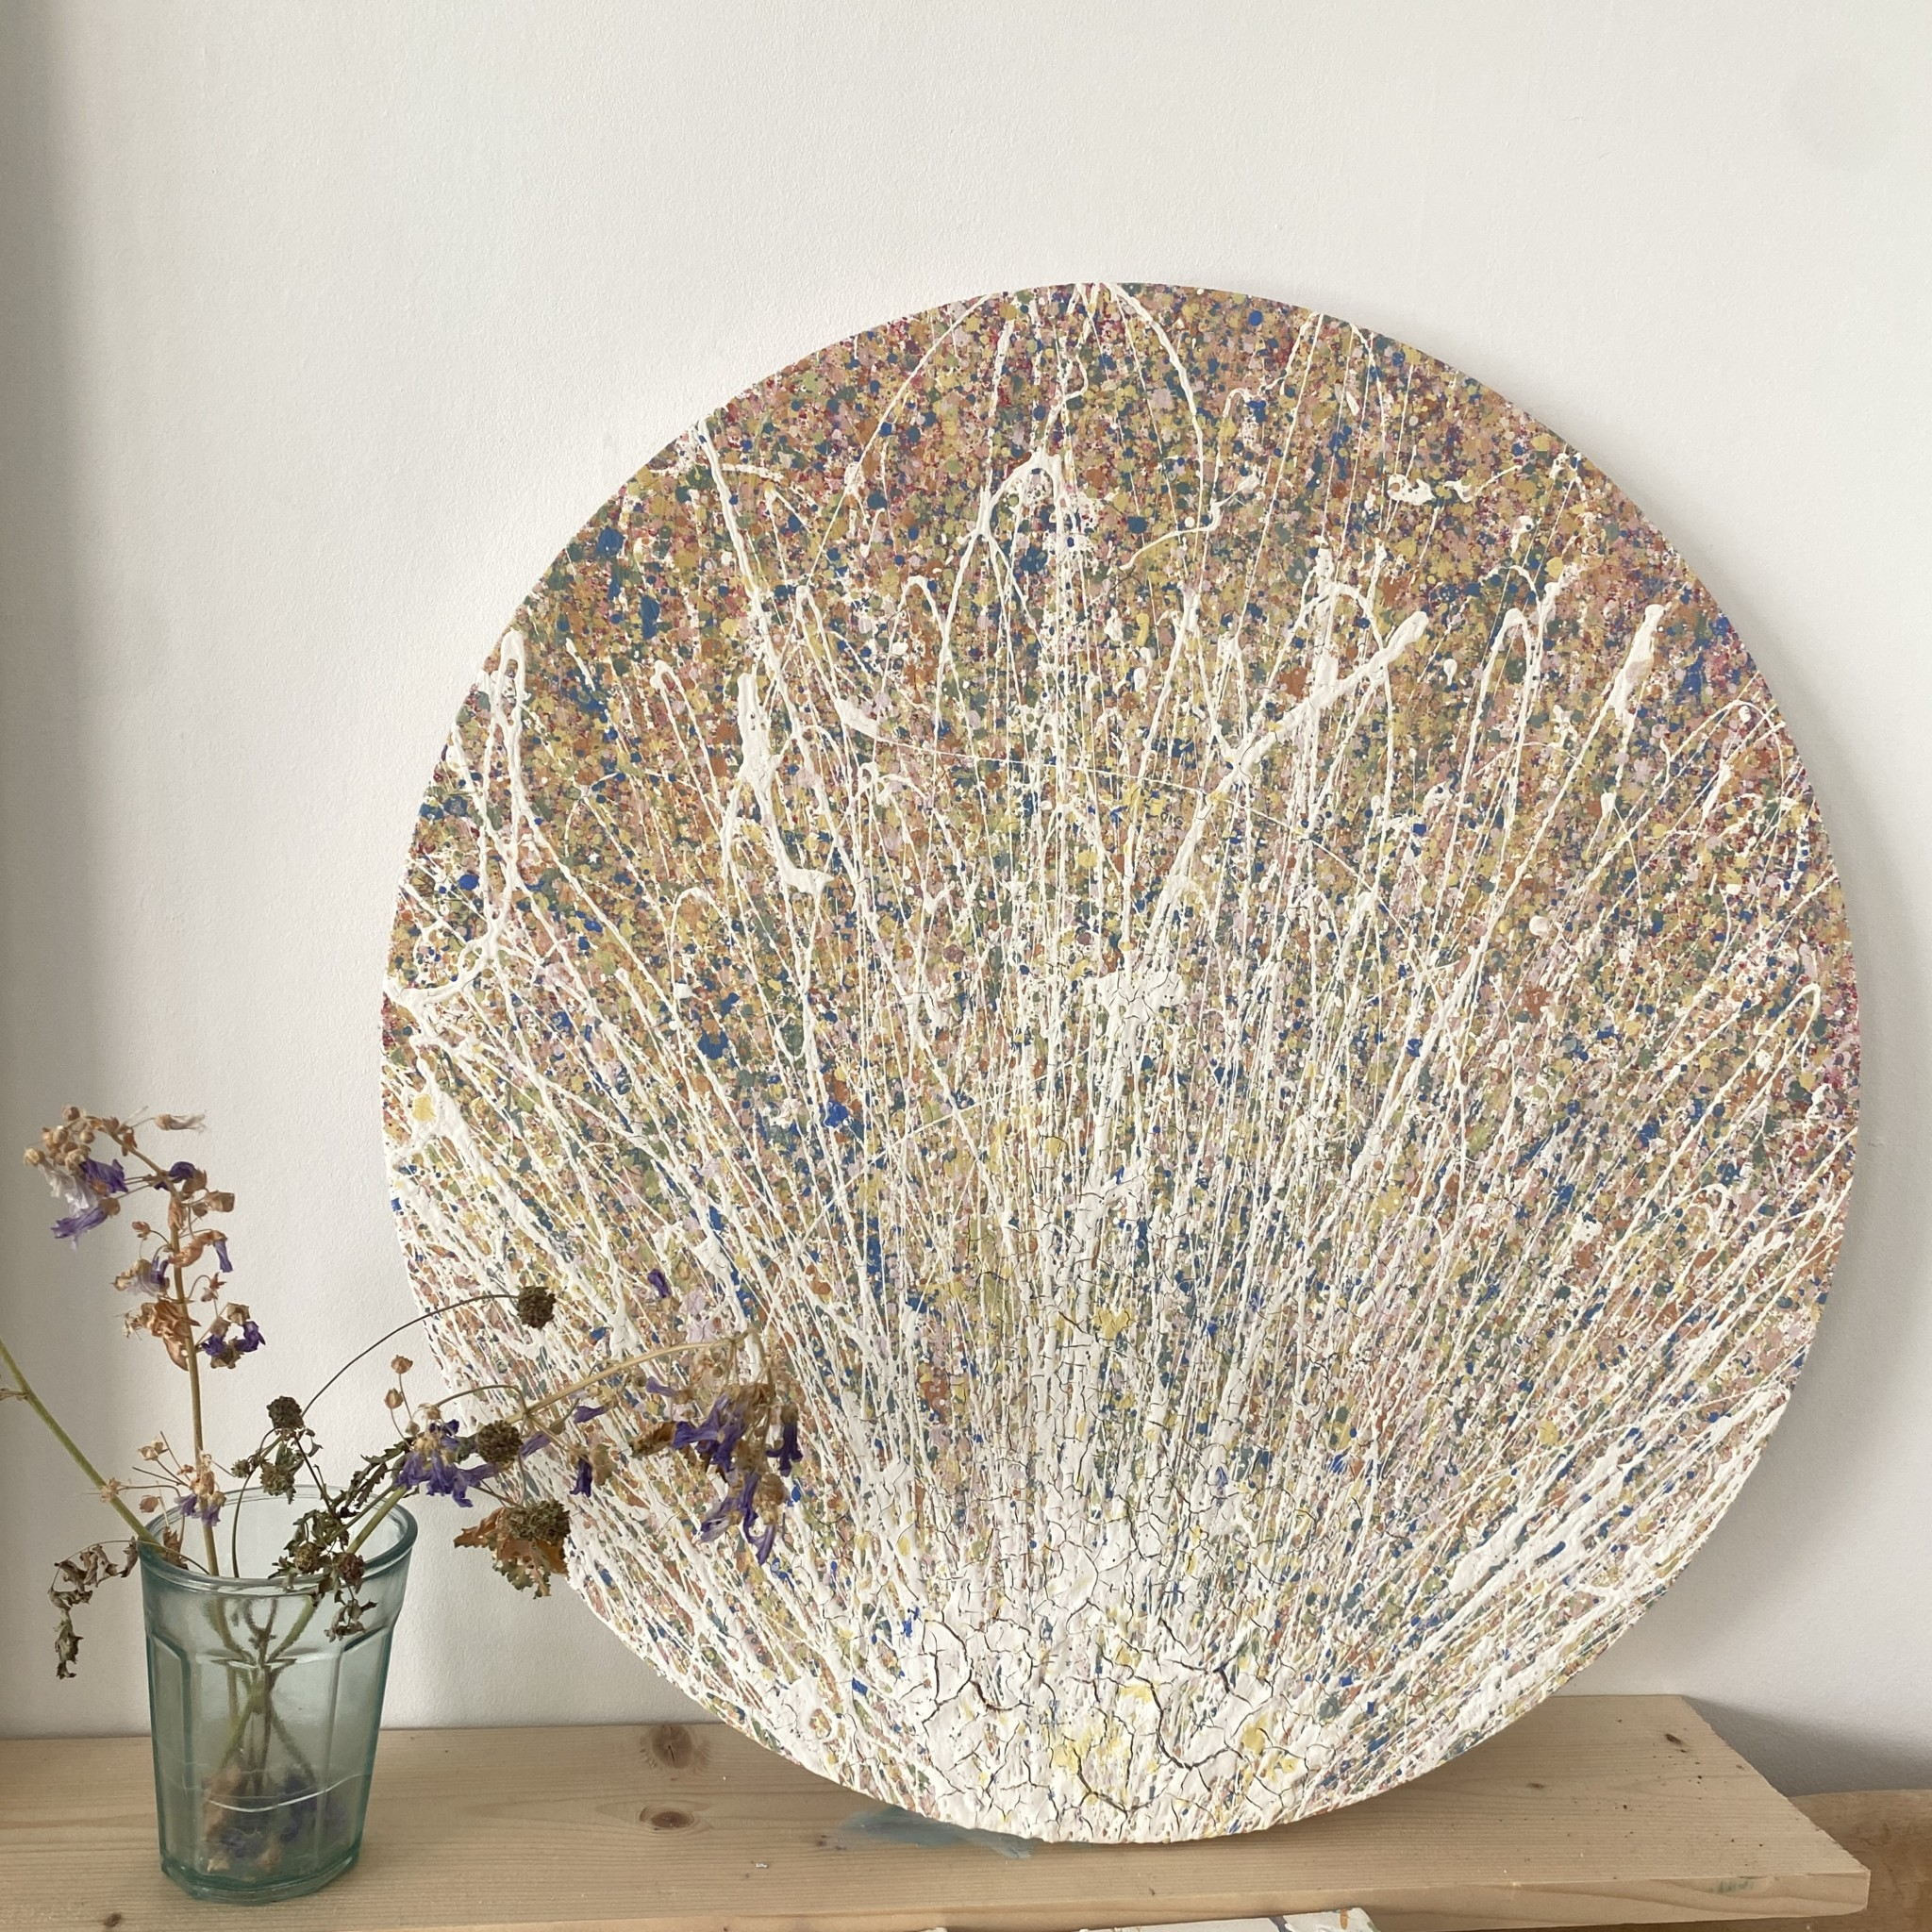 the gallery view of dawning of autumn in somerset by somerset artist emily duchscherer kirk created with eco friendly, water based paints which show hints of a glossy affect this circular artwork is finished a satin varnish that gives a three dimensional affect this round textured abstract painting is made on a cotton canvas measuring 60 centimetres in diameter which is approximately 24 Inches dawning of autumn in Somerset was completed in my home studio located in south Somerset